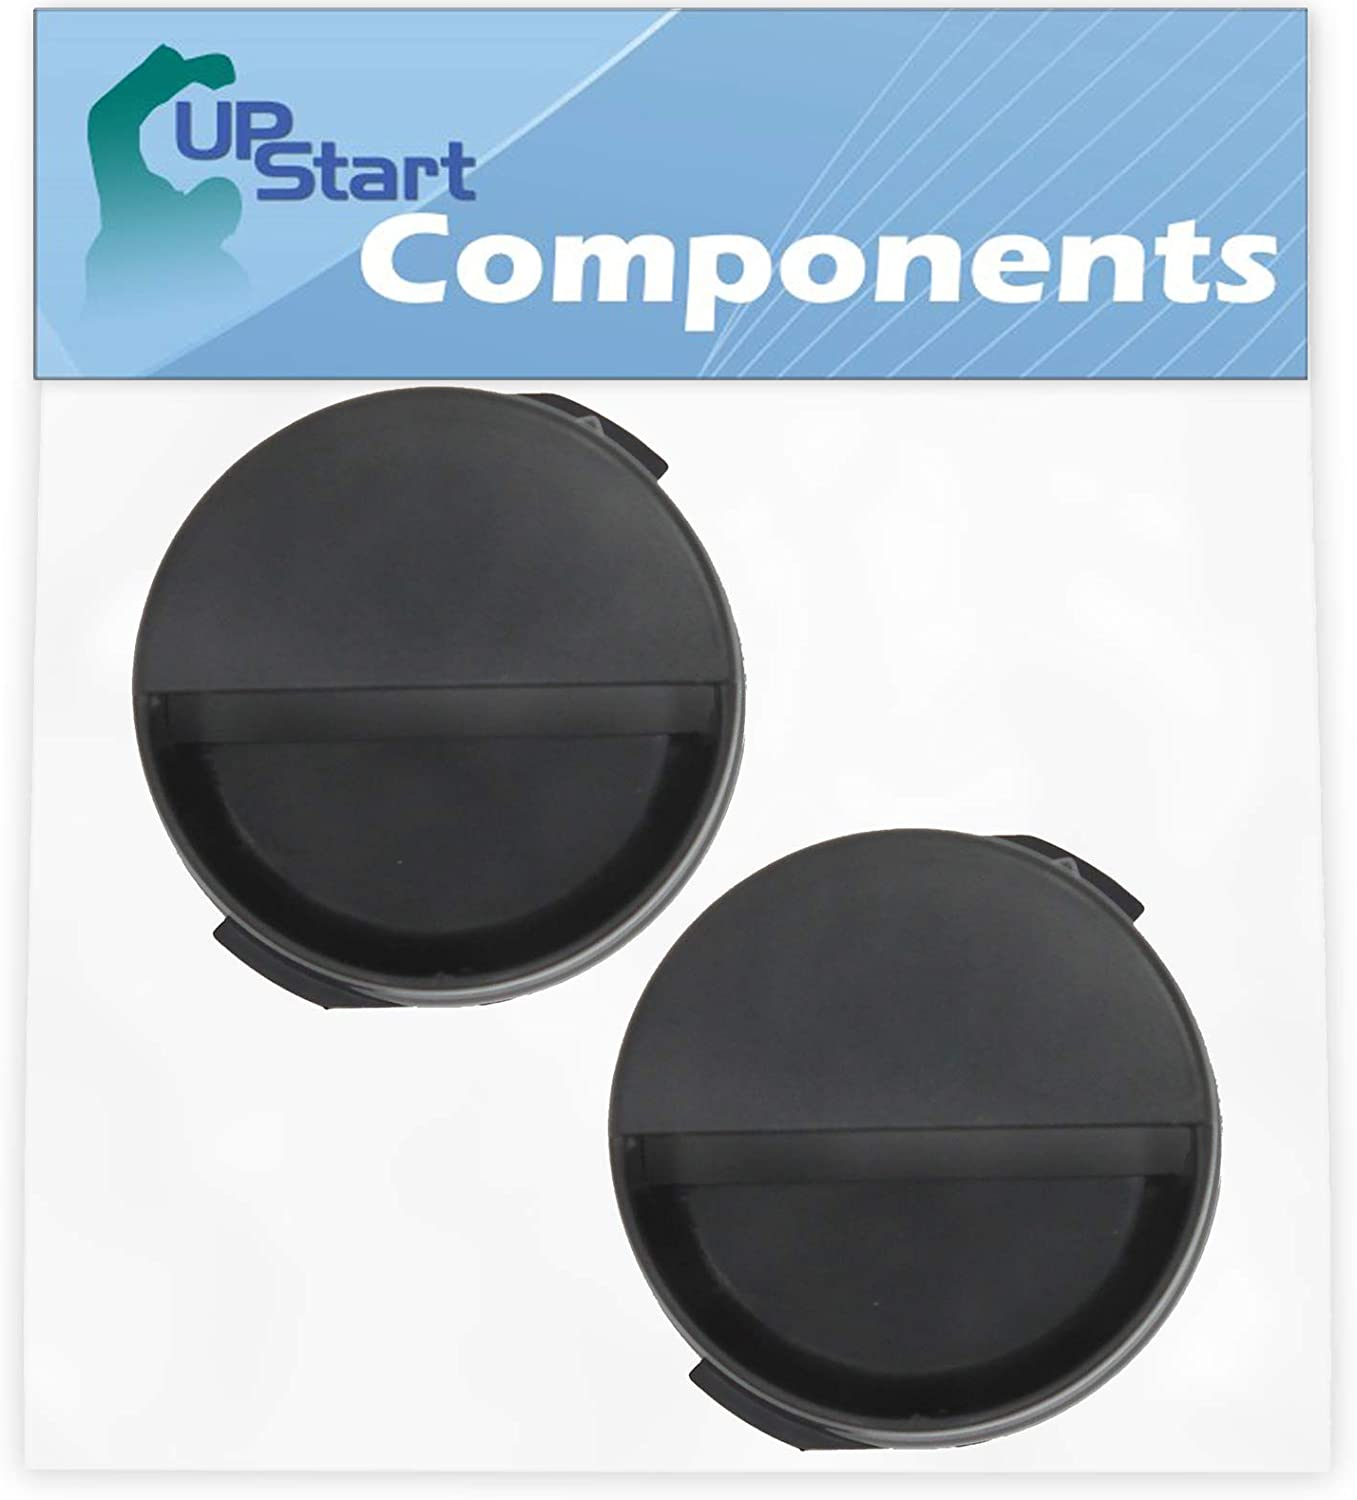 2-Pack 2260502B Refrigerator Water Filter Cap Replacement for Whirlpool ED2NHGXVQ01 Refrigerator - Compatible with WP2260518B Black Water Filter Cap - UpStart Components Brand